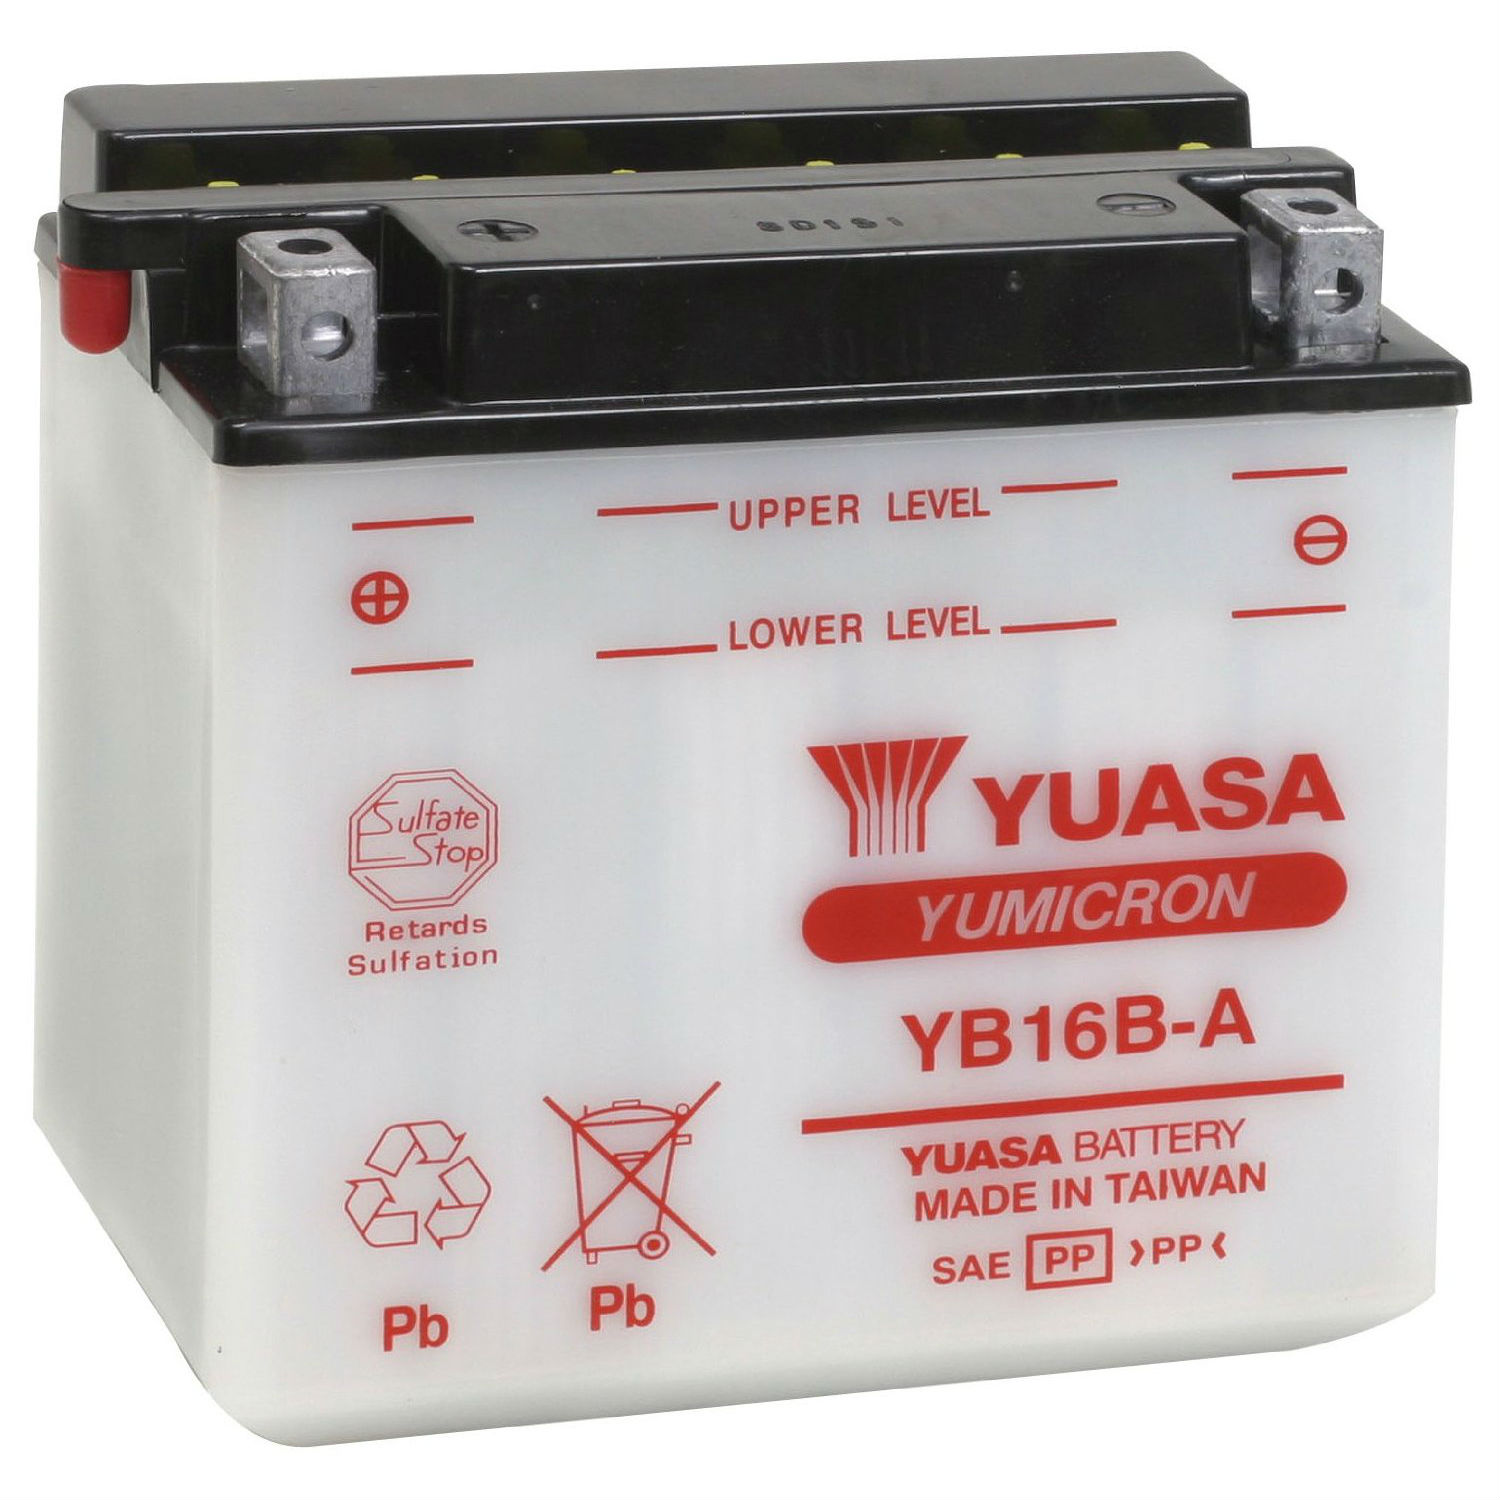 Get it delivered to your door - Yuasa YB16B-A Battery (Taiwan) - 1375 (EGP)